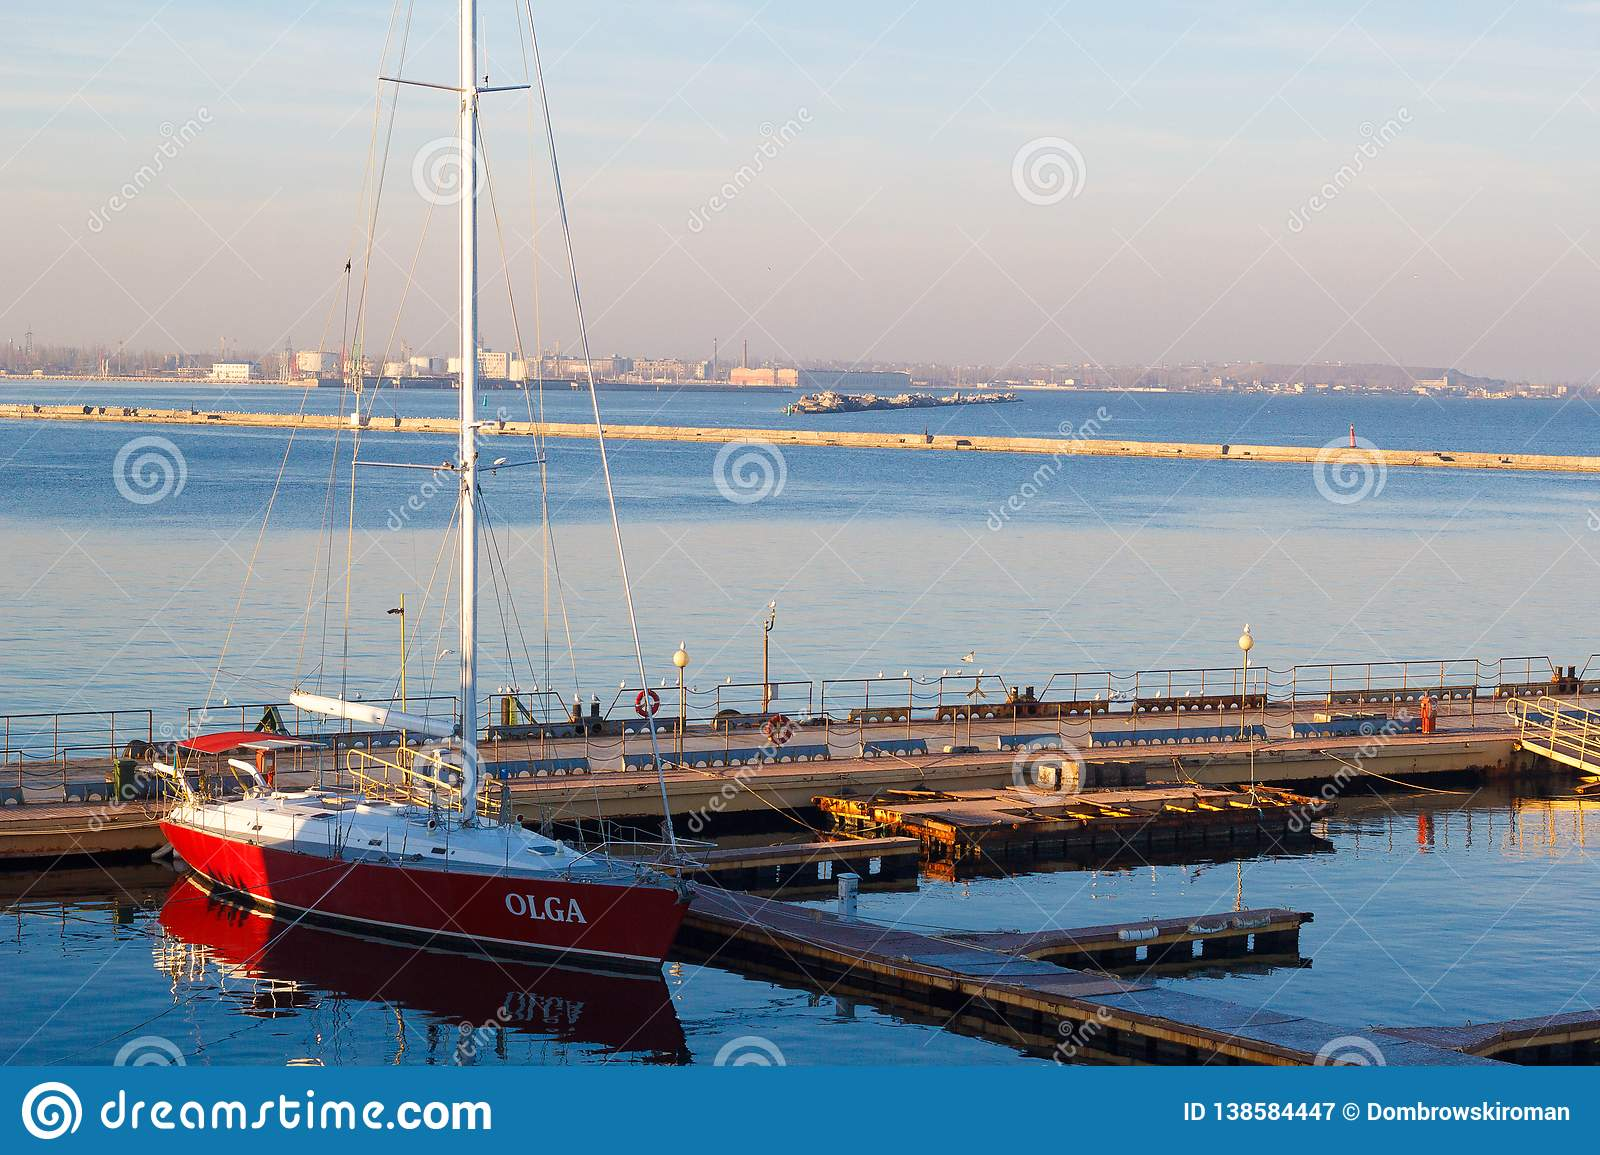 ODESSA, UKRAINE - January 02, 2017 A red yacht at the yacht club in the port of Odessa